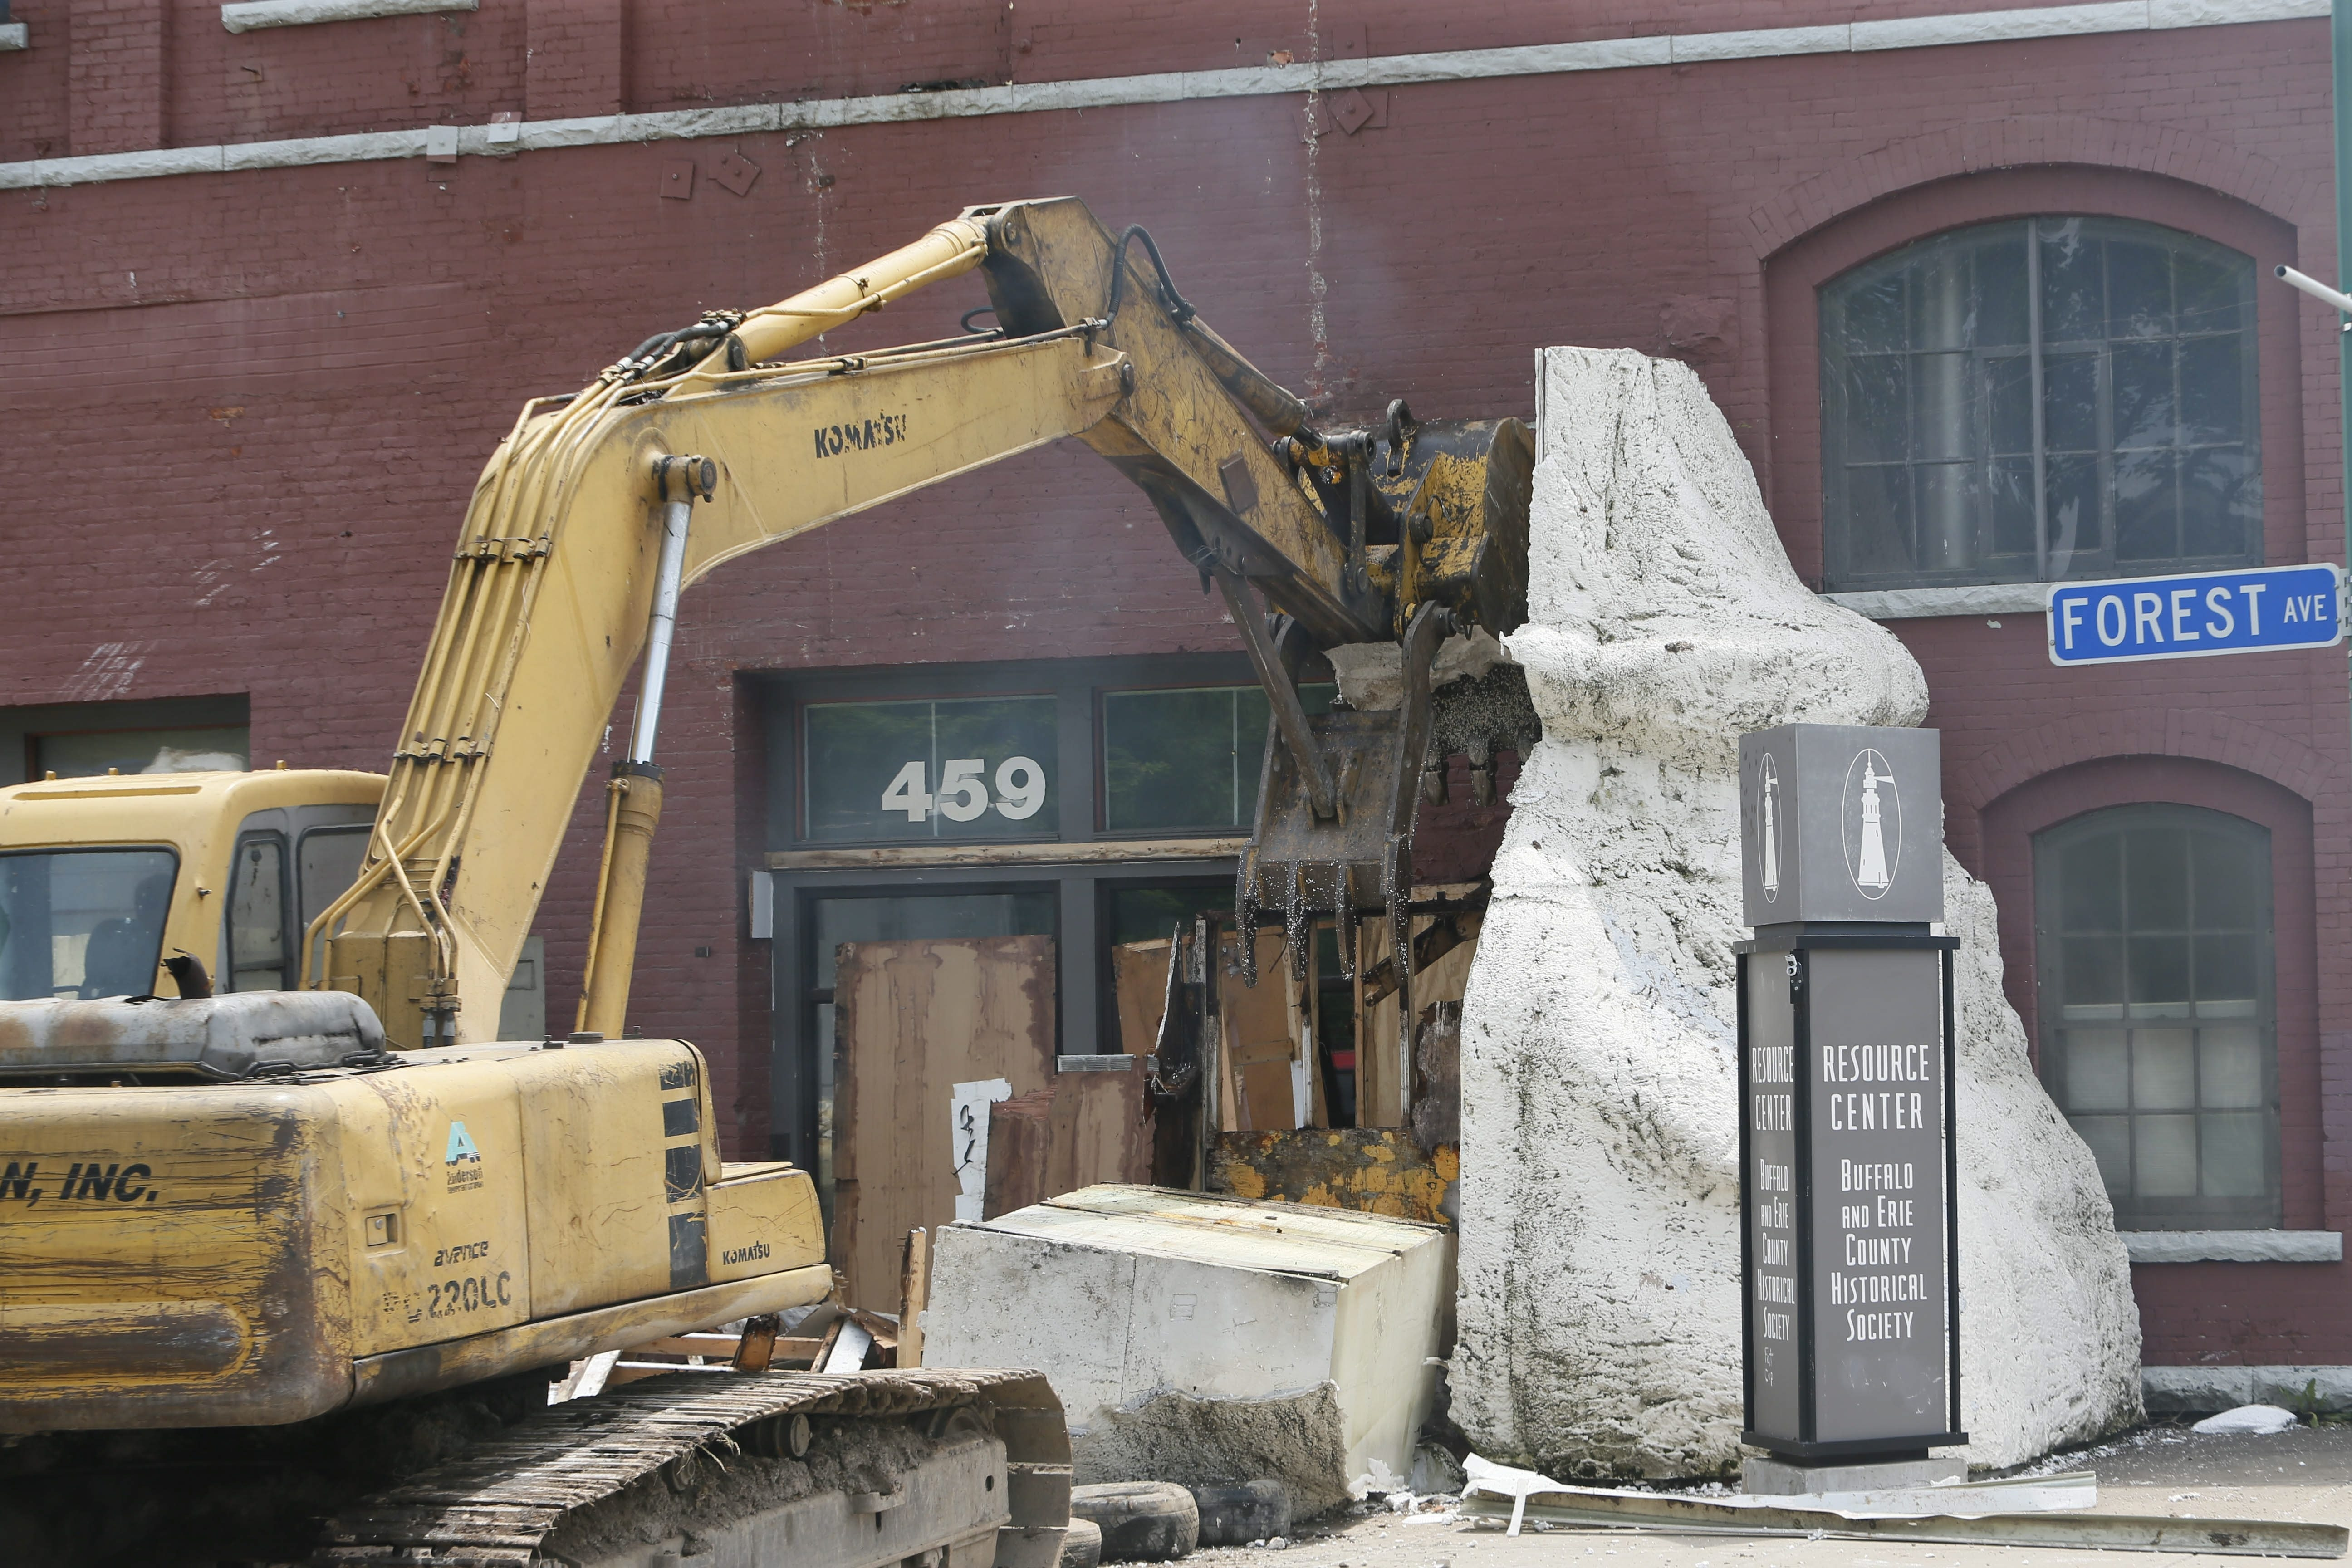 A demolition crew removes the statue from the entrance to the Buffalo History Museum's Resource Center on Forest Avenue on Monday.  The styrofoam replica of a statue from the Pan-American Exhibition was put up in 2001 to mark the centennial of the Pan-Am.